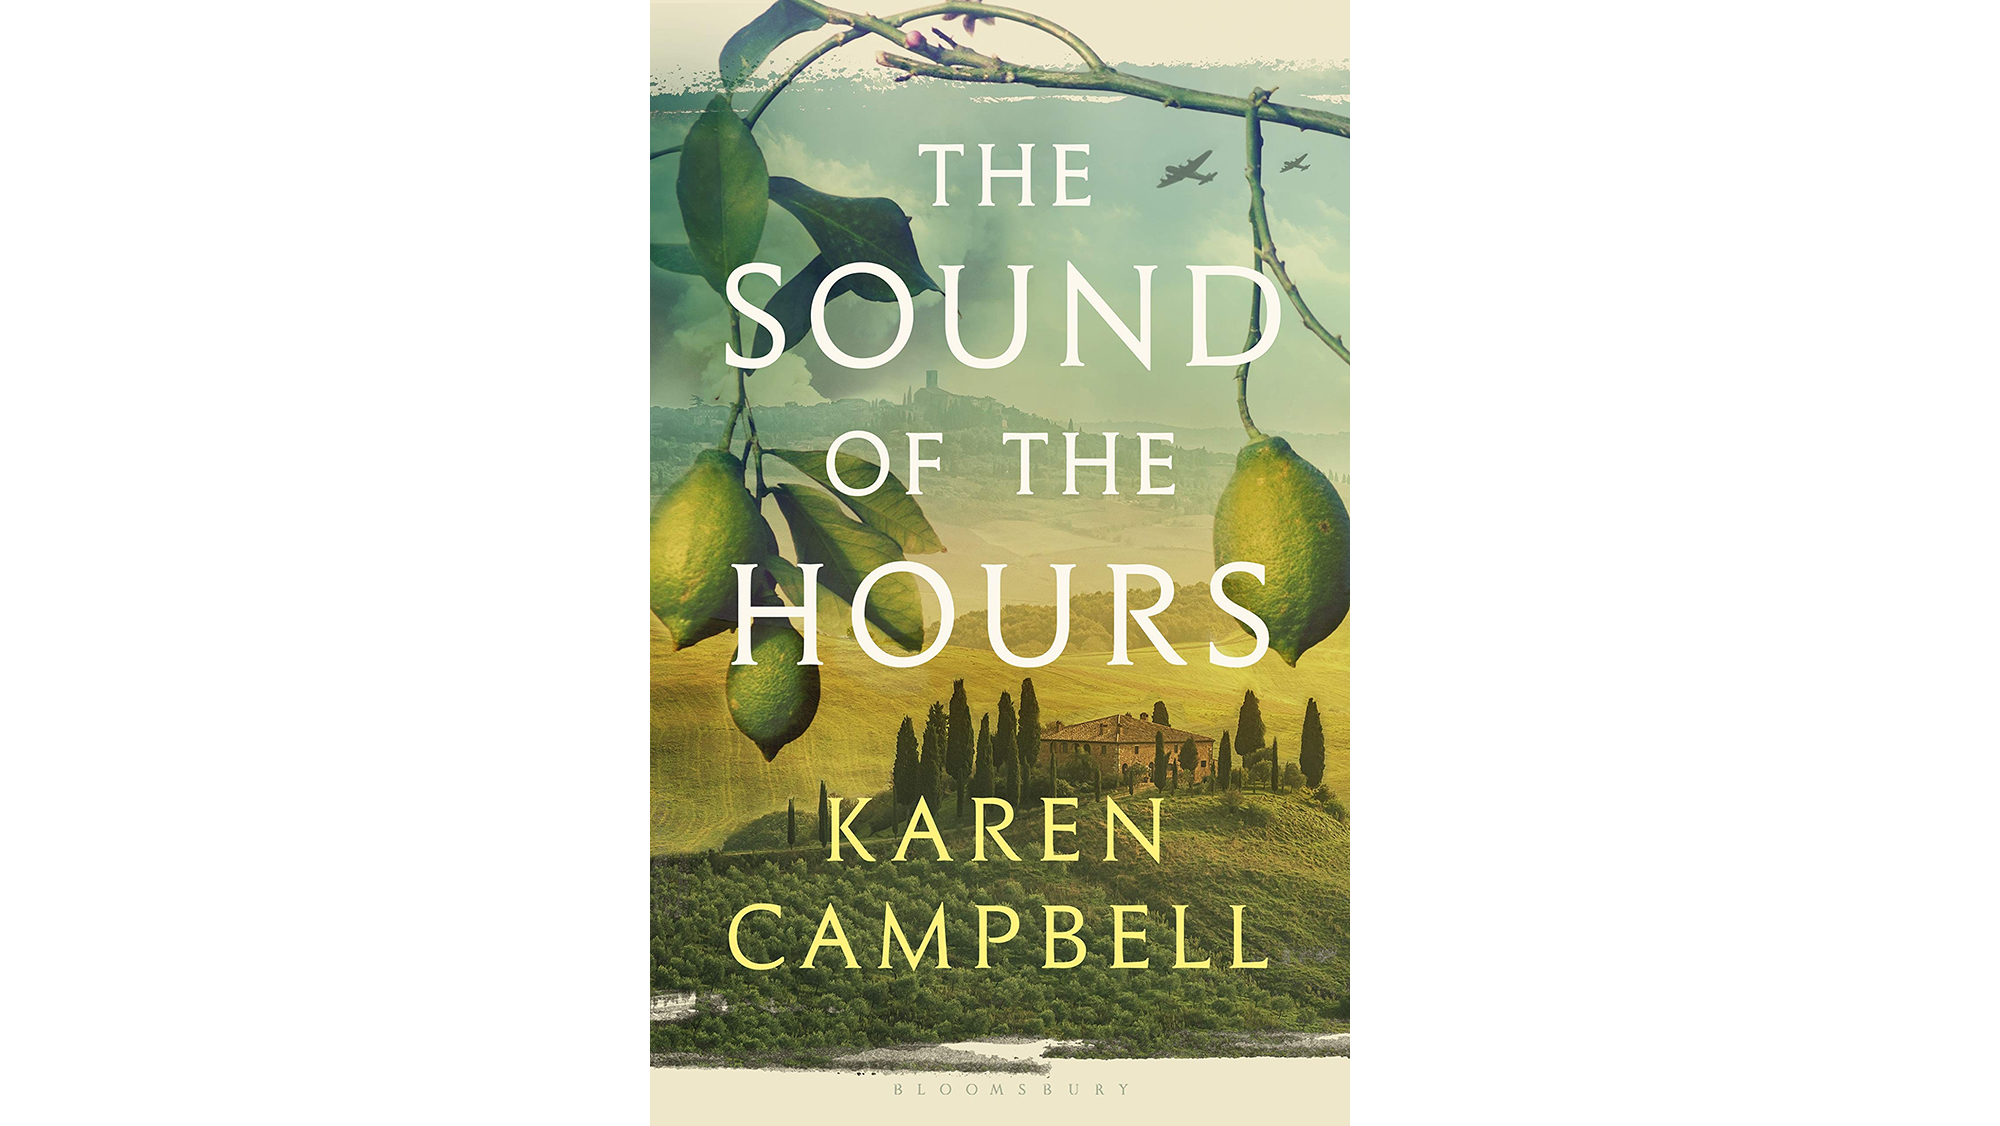 Cover of The Sound of the Hours, by Karen Campbell